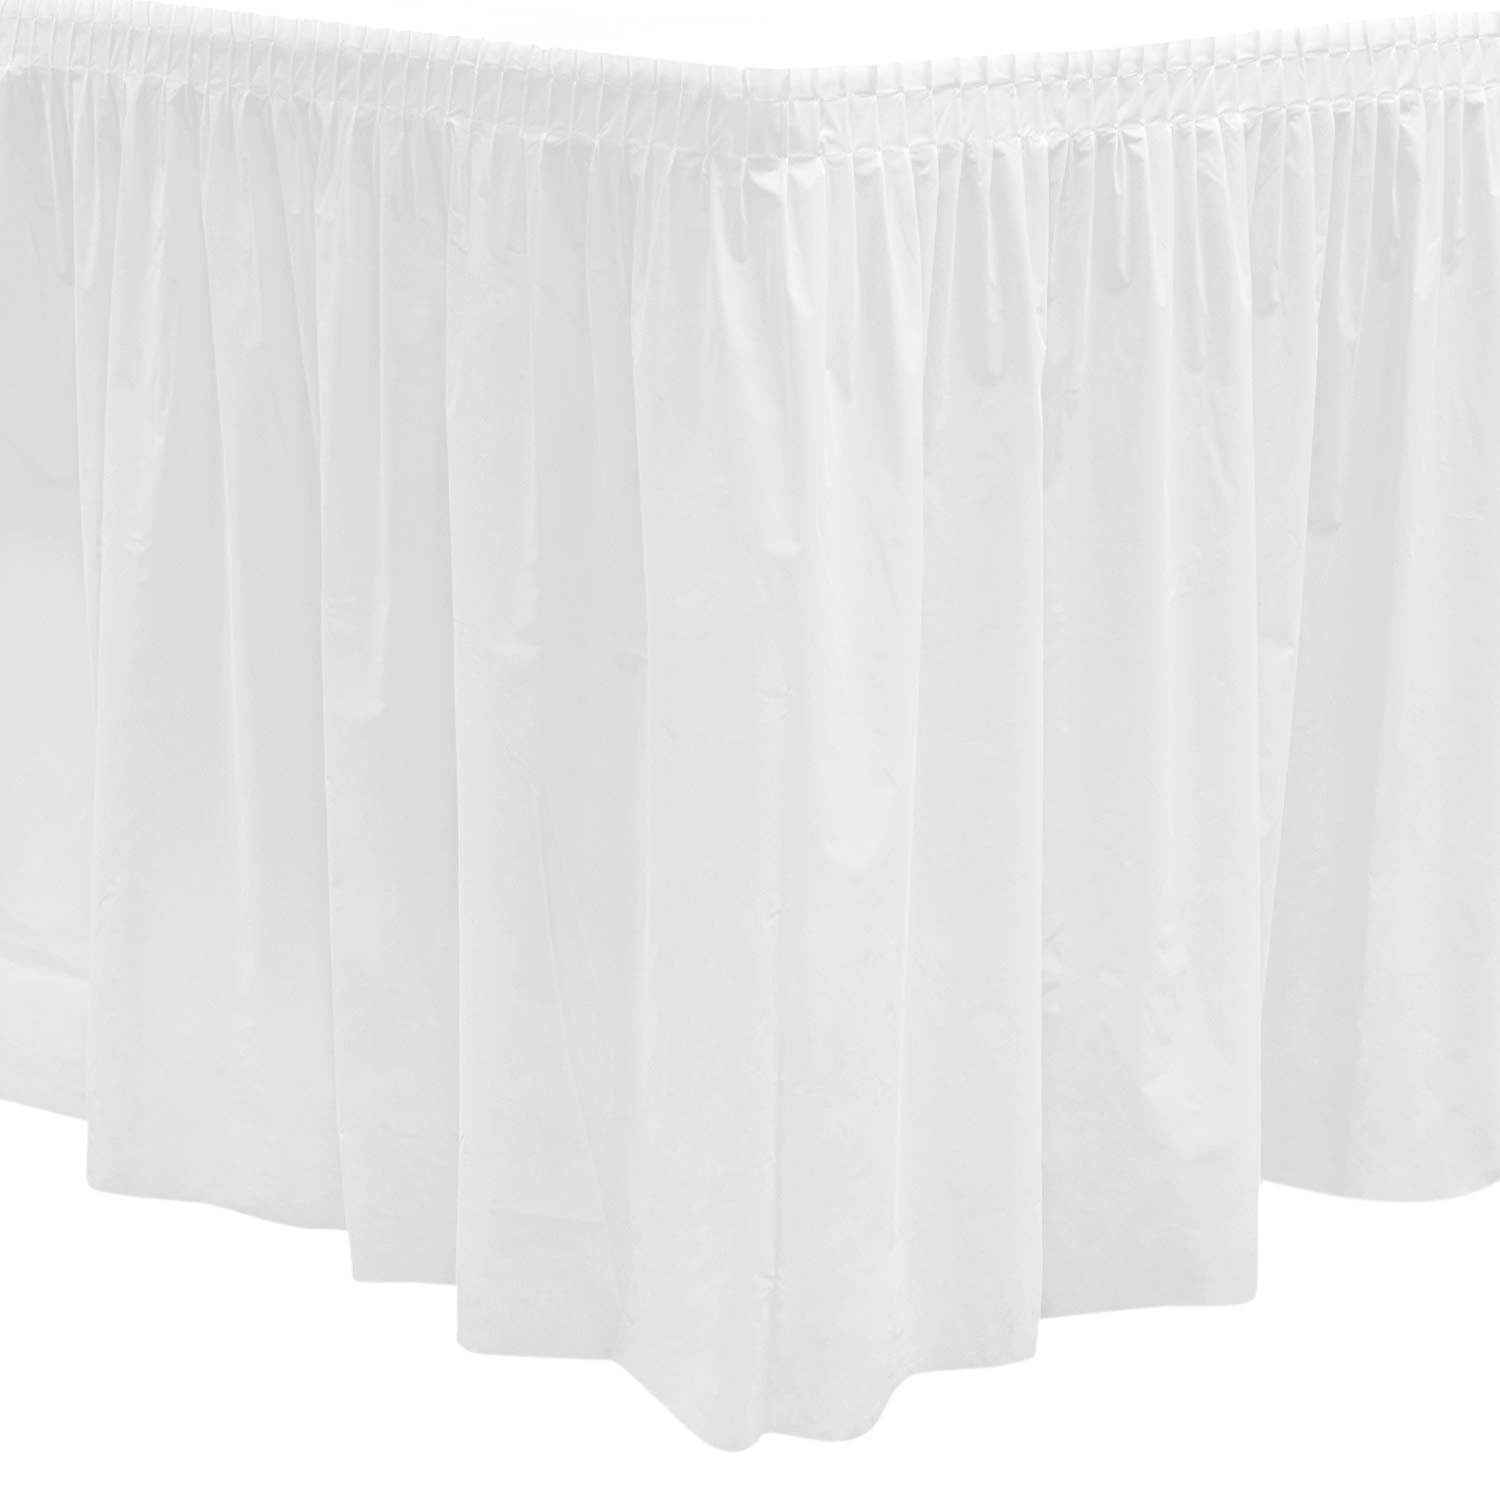 Party Essentials Plastic Table Skirt, 96'' Length x 29'' Width, White (Case of 6)